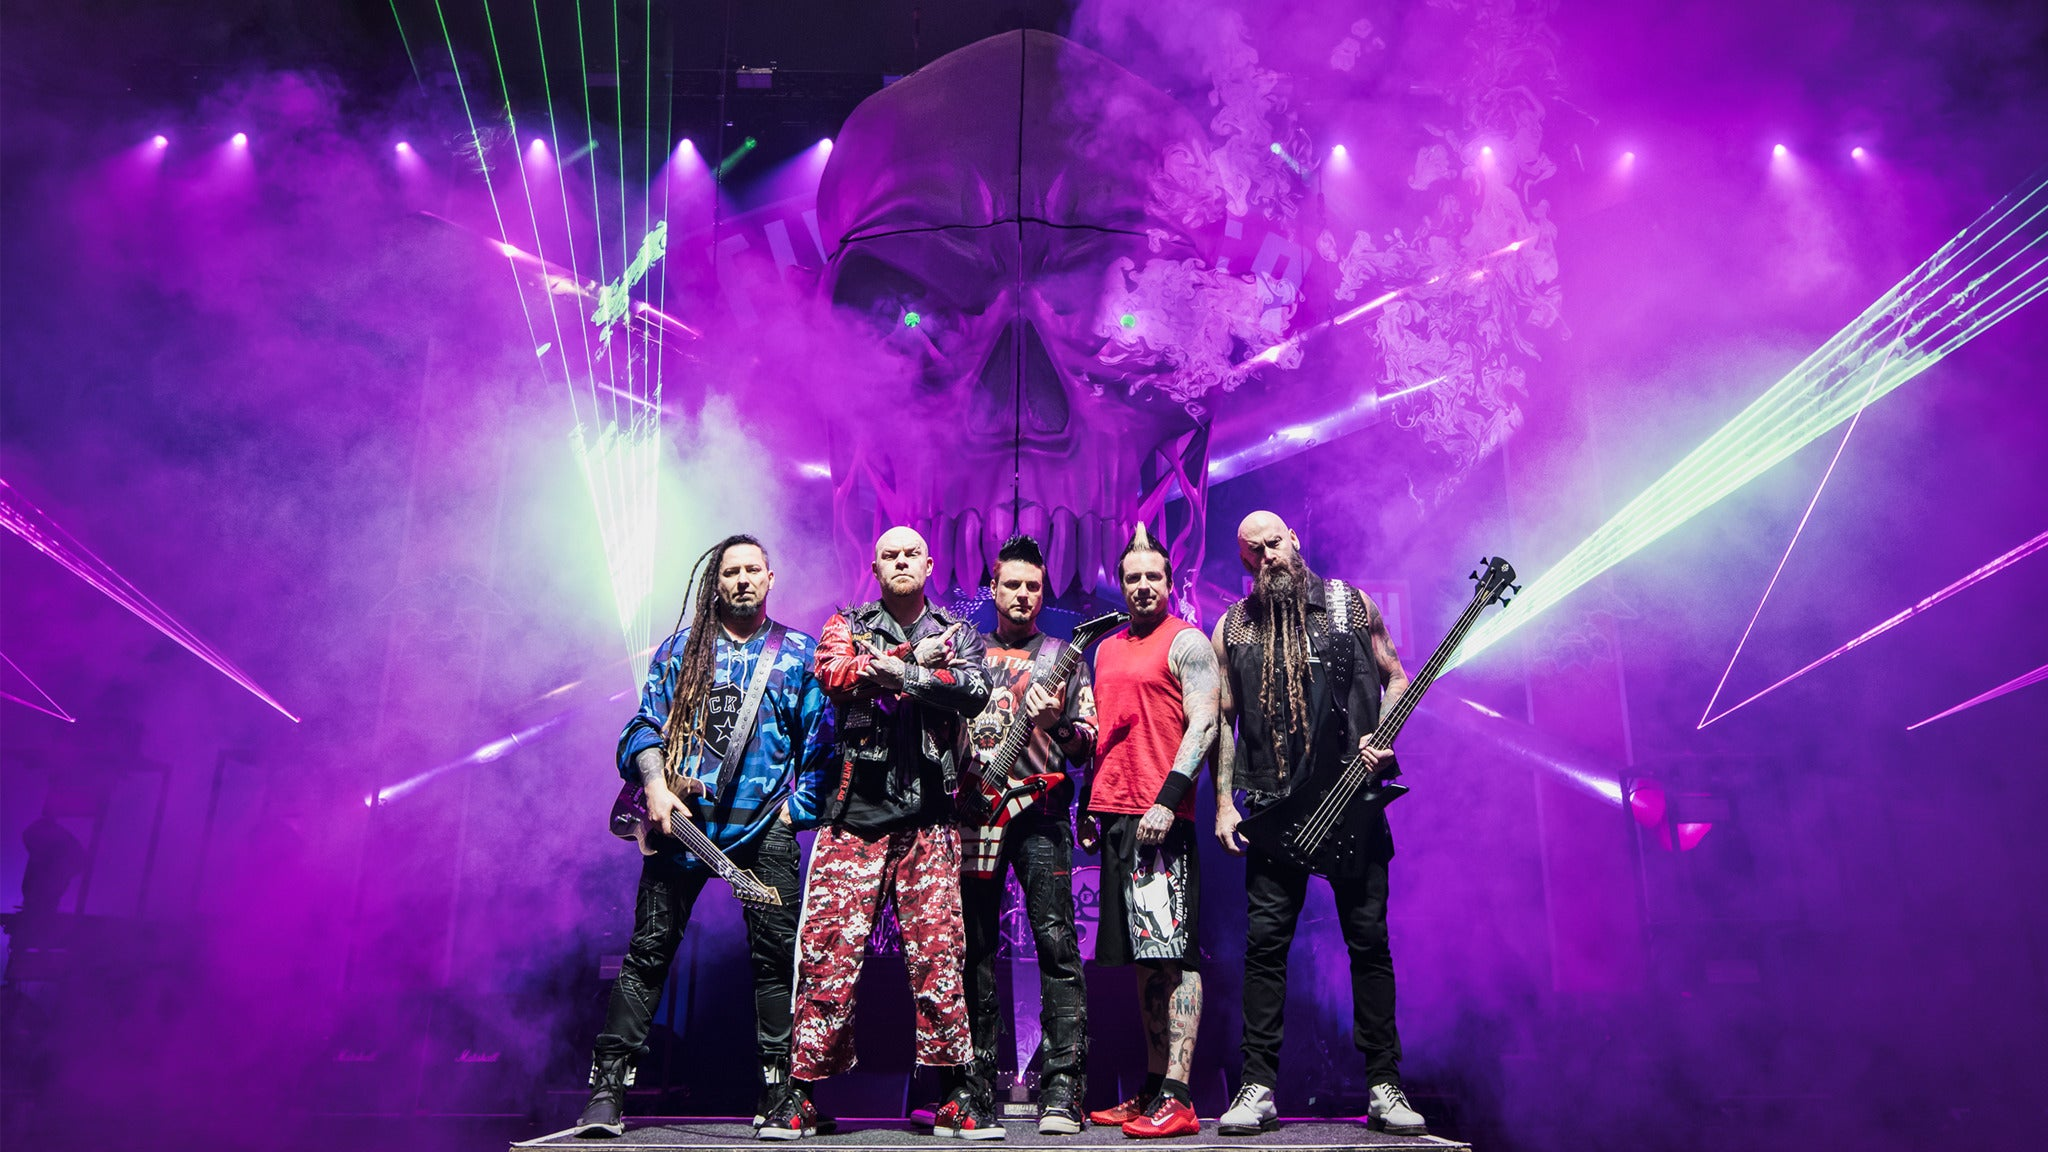 95.5 Klos Whiplash Presents Five Finger Death Punch